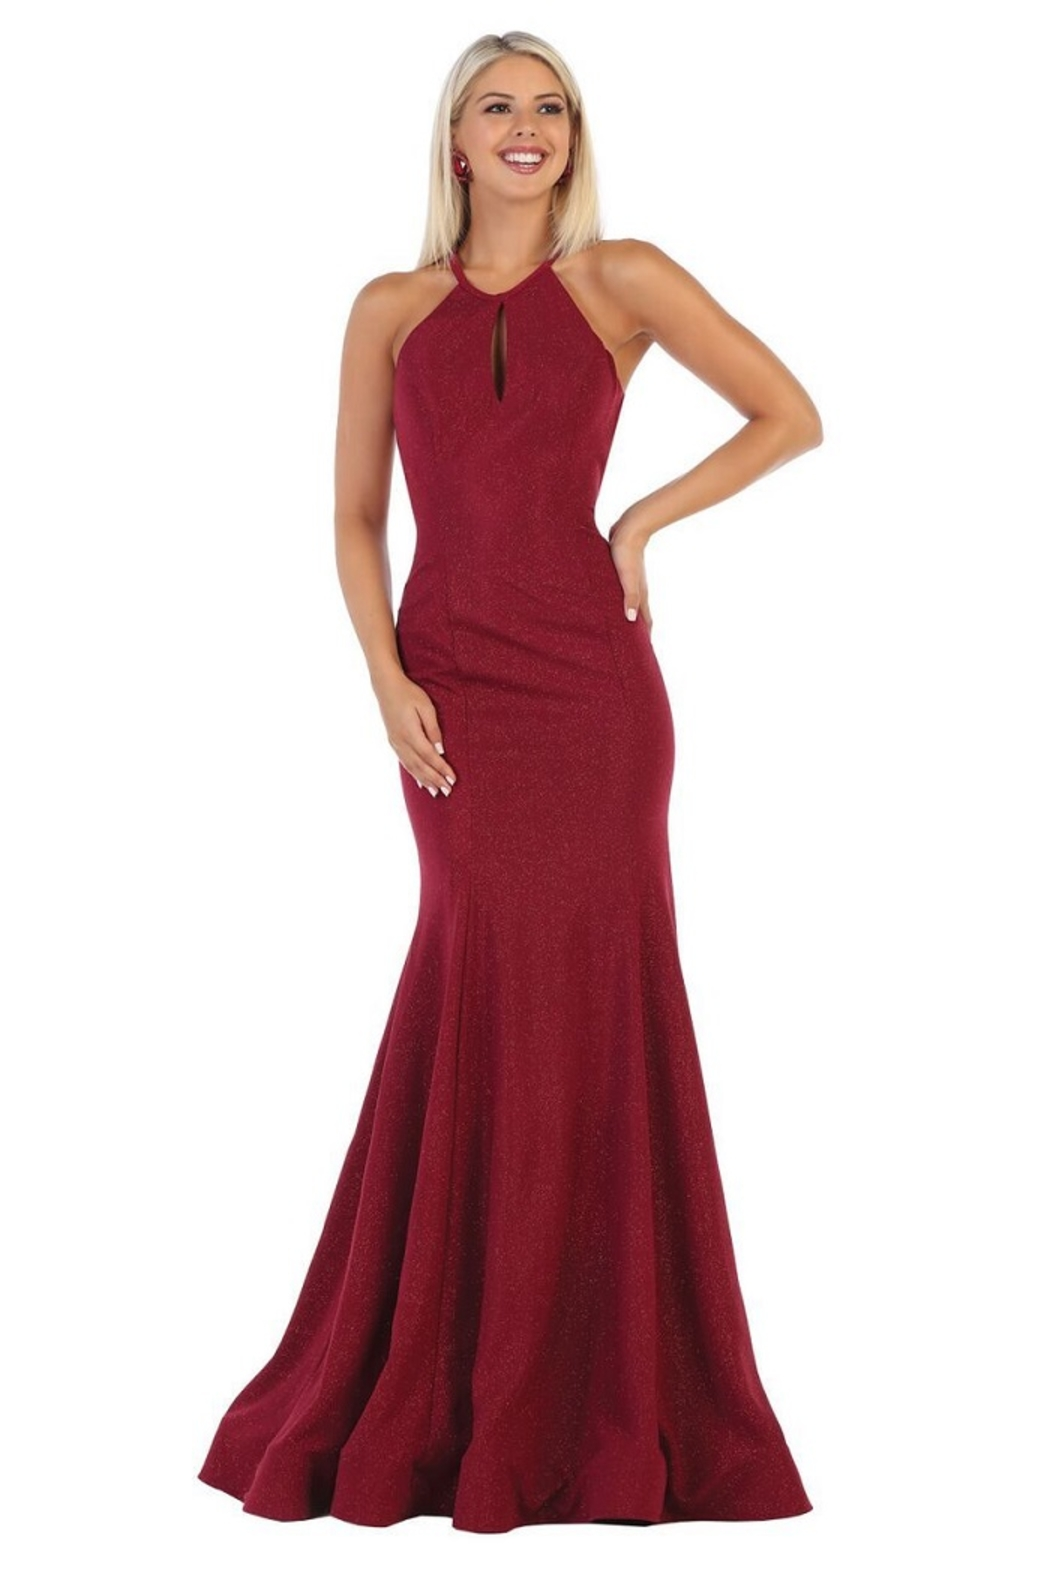 May Queen  Burgundy Glitter Fit & Flare Formal Long Dress - Main Image